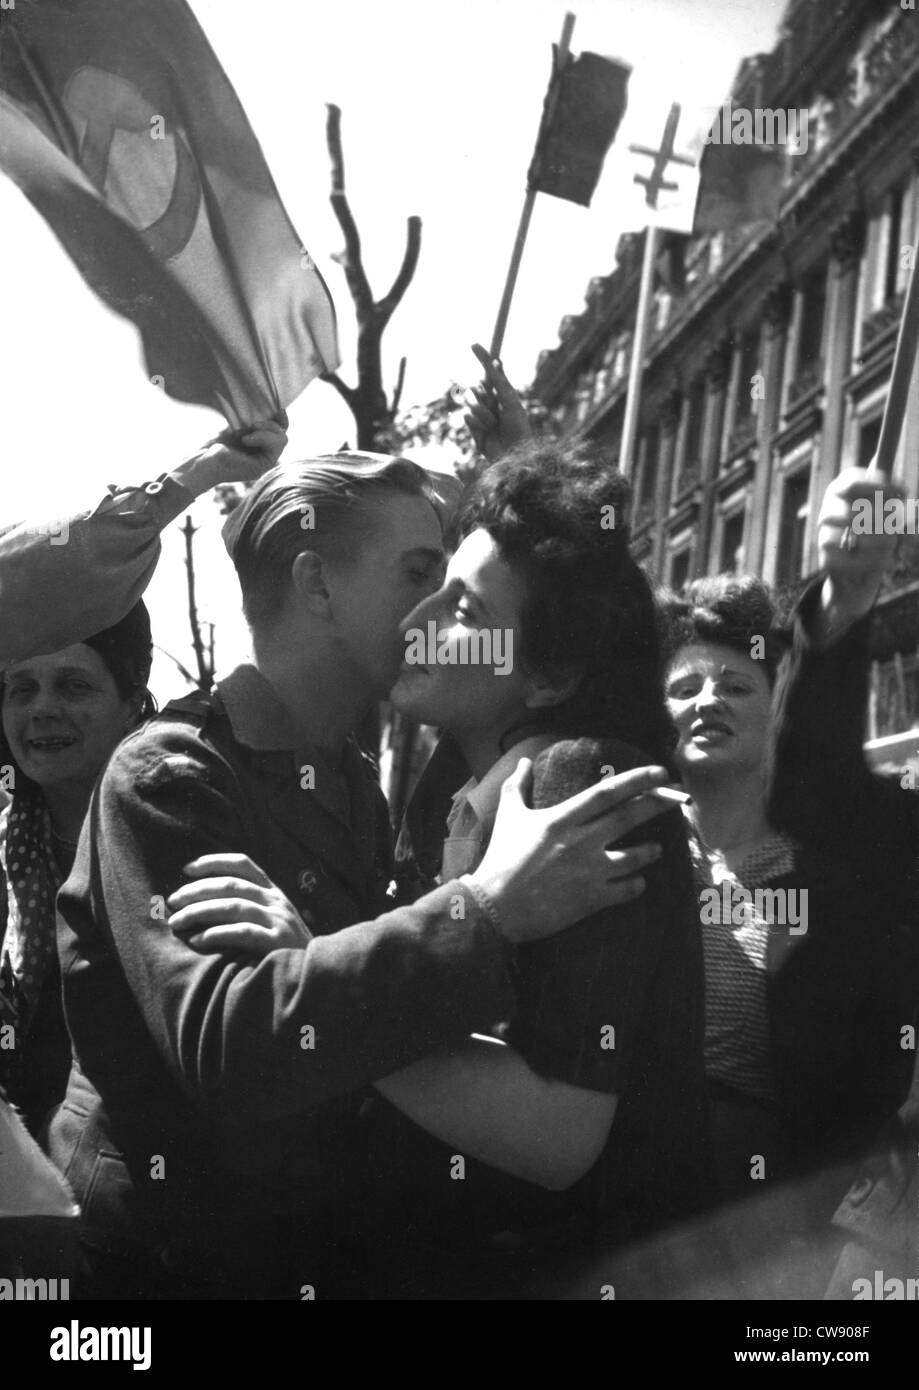 Communists resistants members F.F.I. at the Liberation Paris (August 1944) - Stock Image